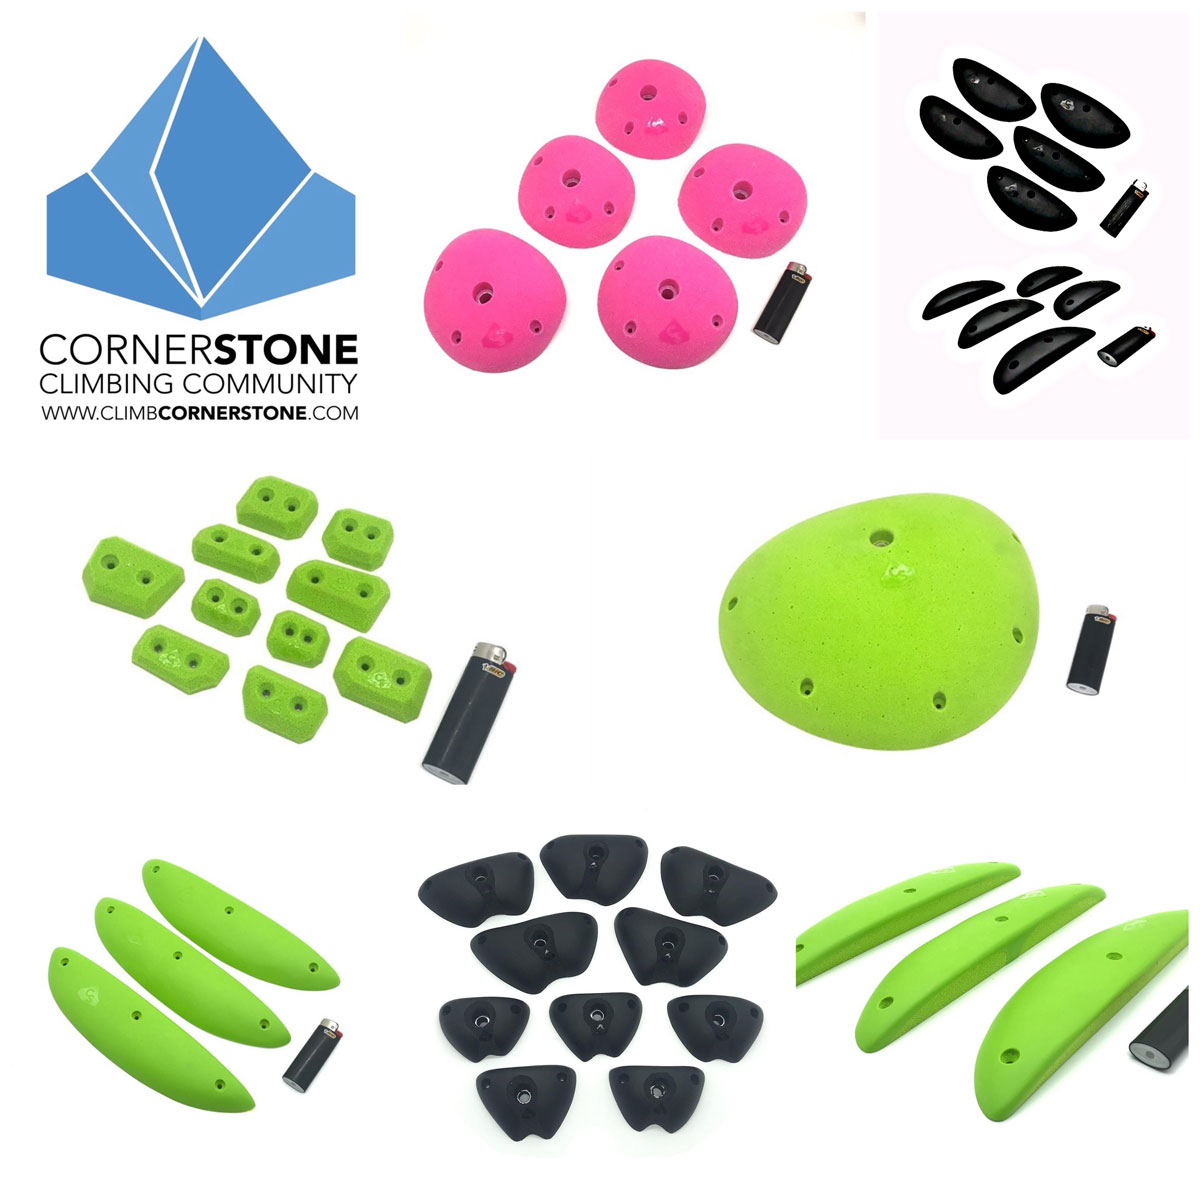 Cornerstone's new smaller shapes